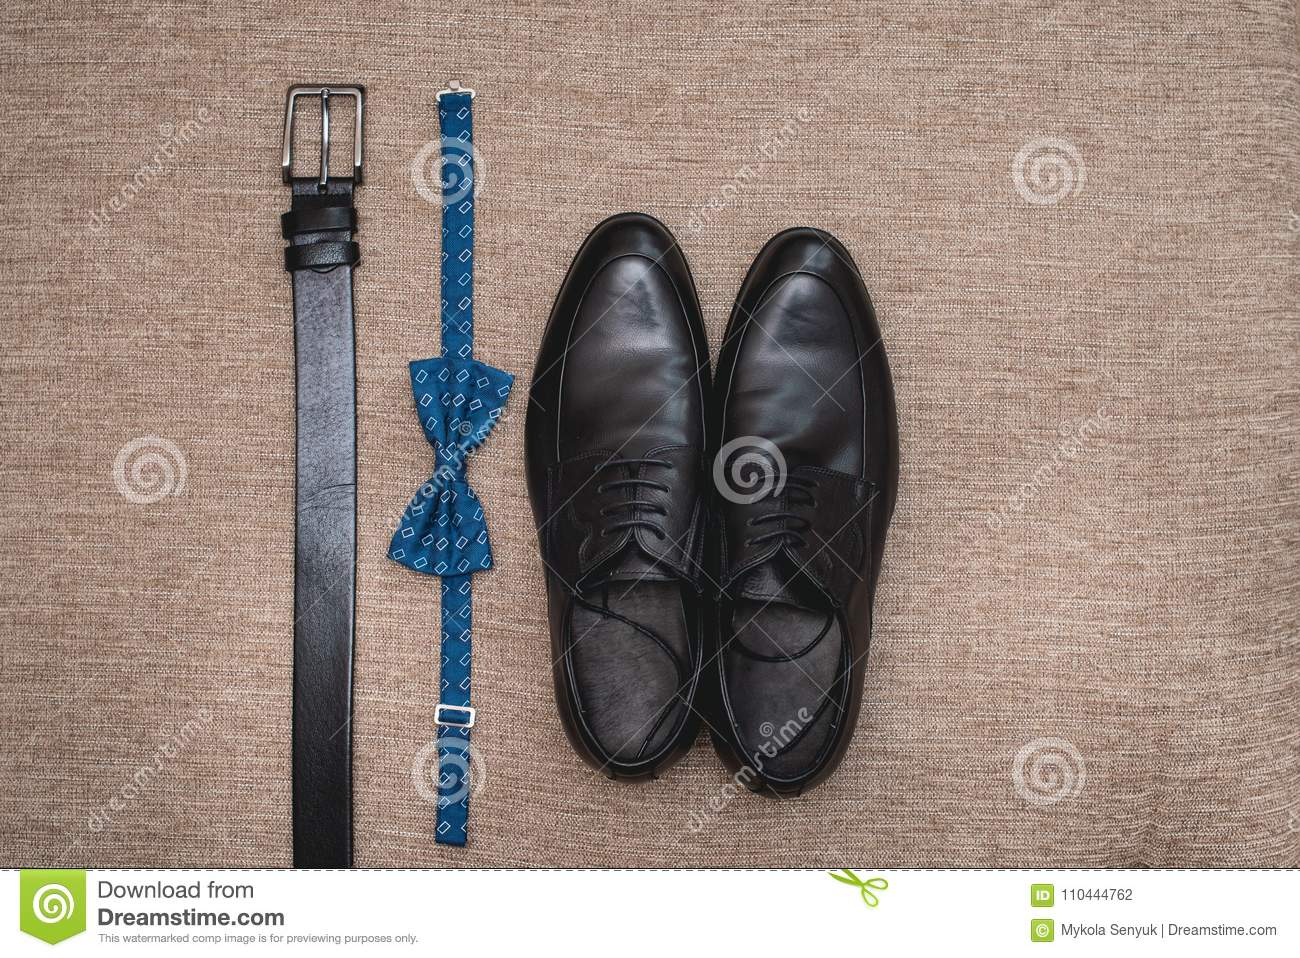 c8c1e5128fef Blue bow tie, leather black shoes and belt. Grooms wedding morning. Close  up of modern man accessories. Look from above